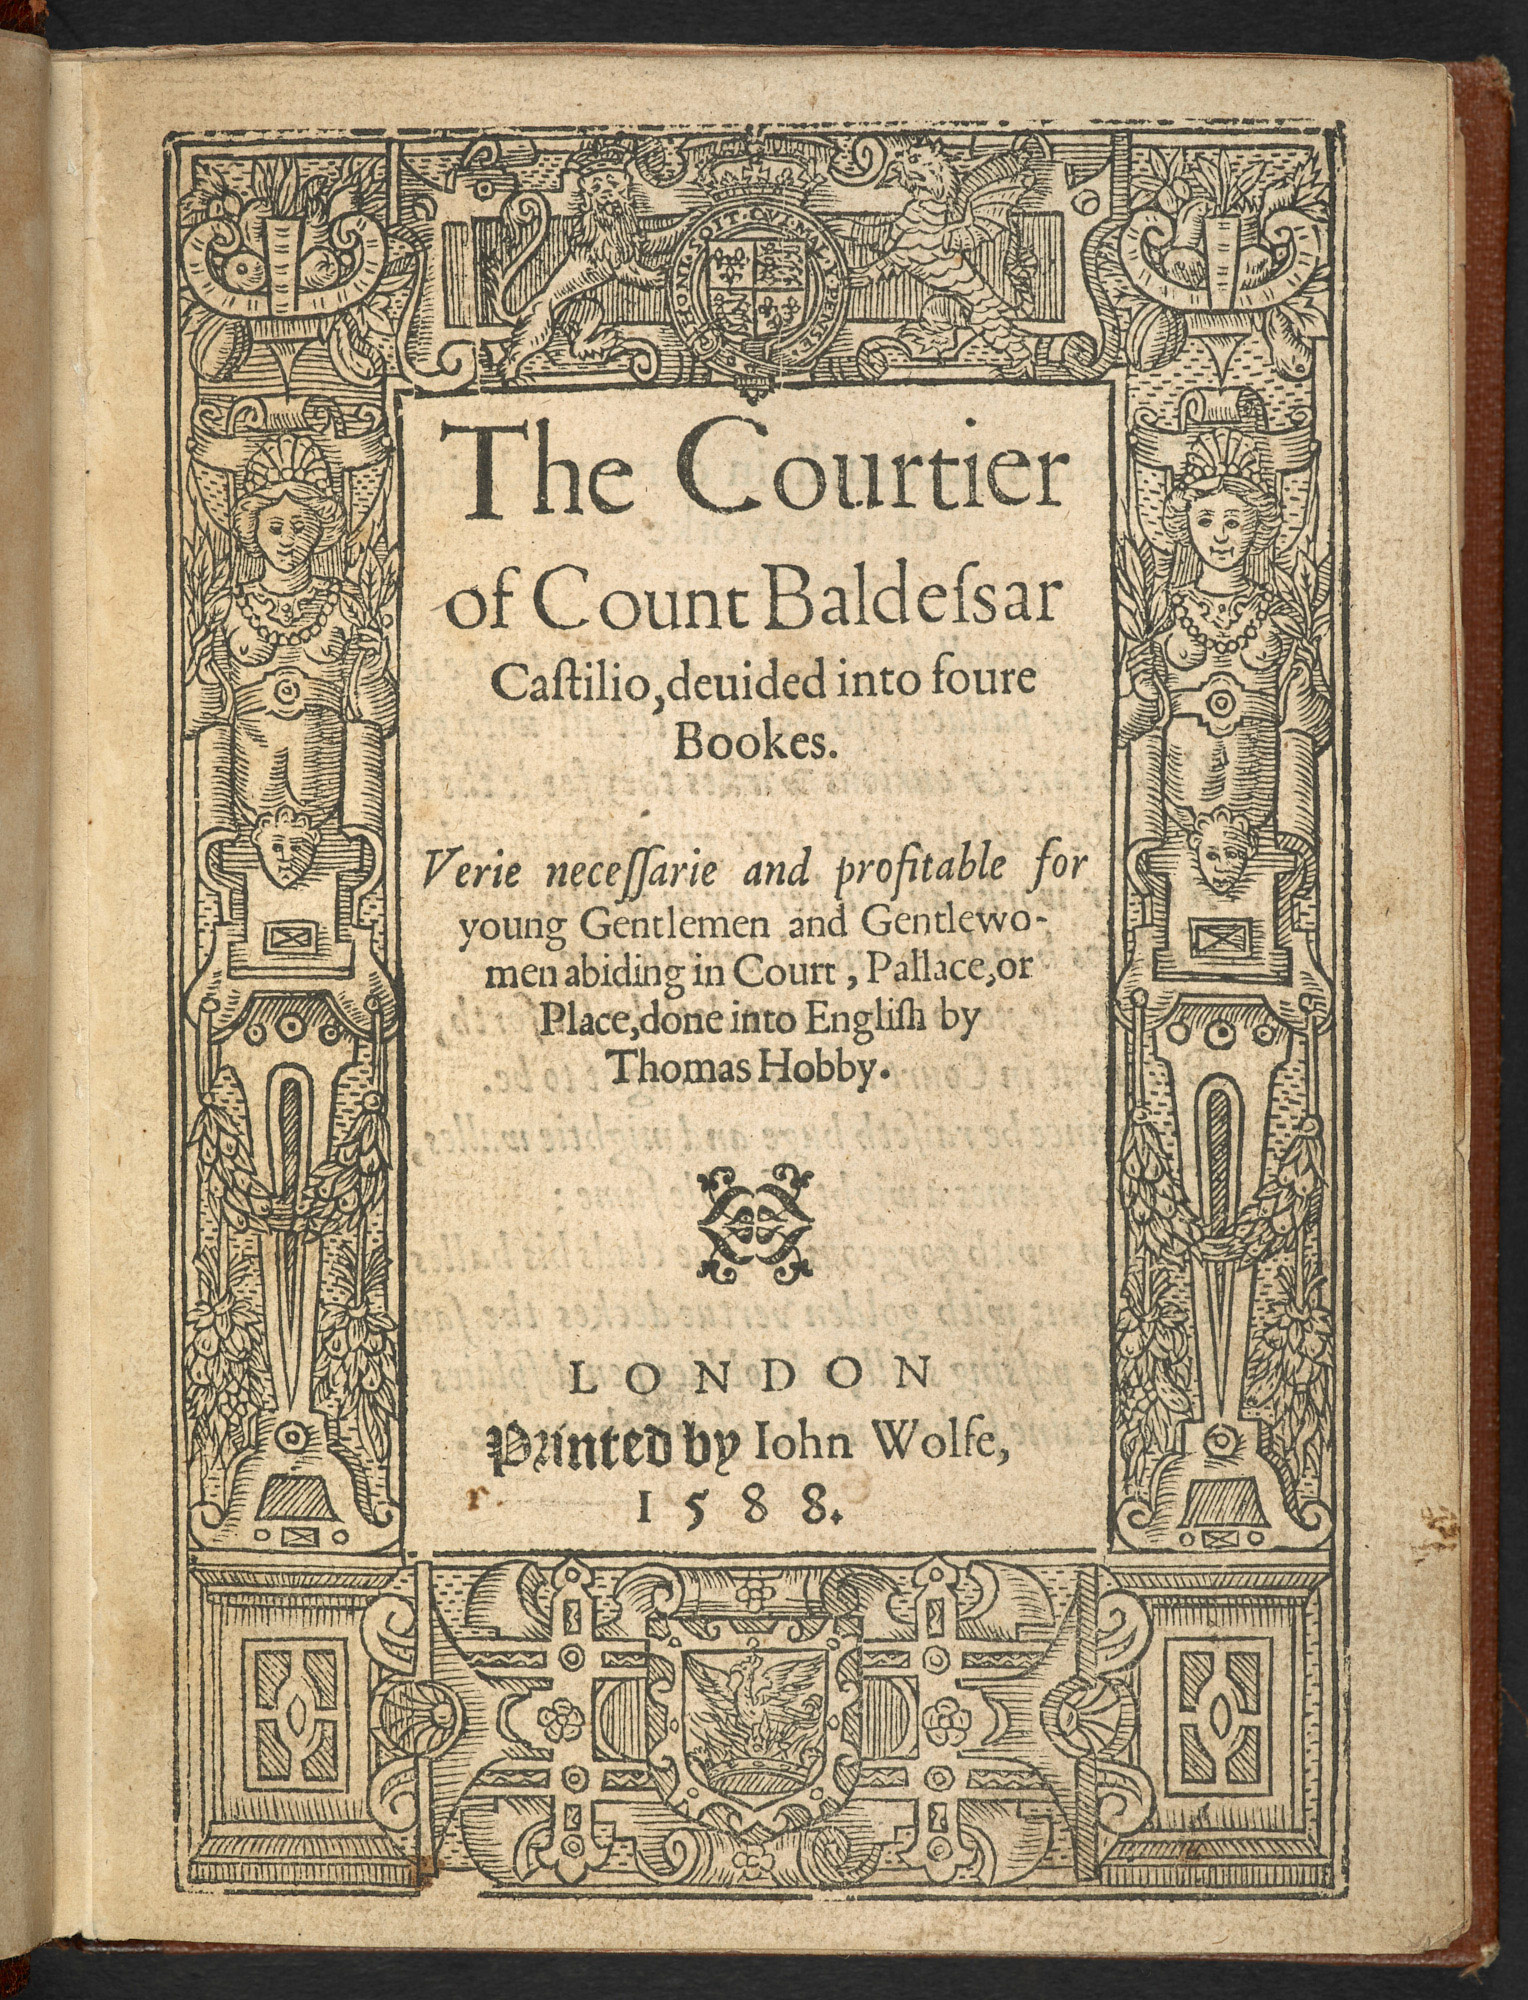 The Book of the Courtier, 1588